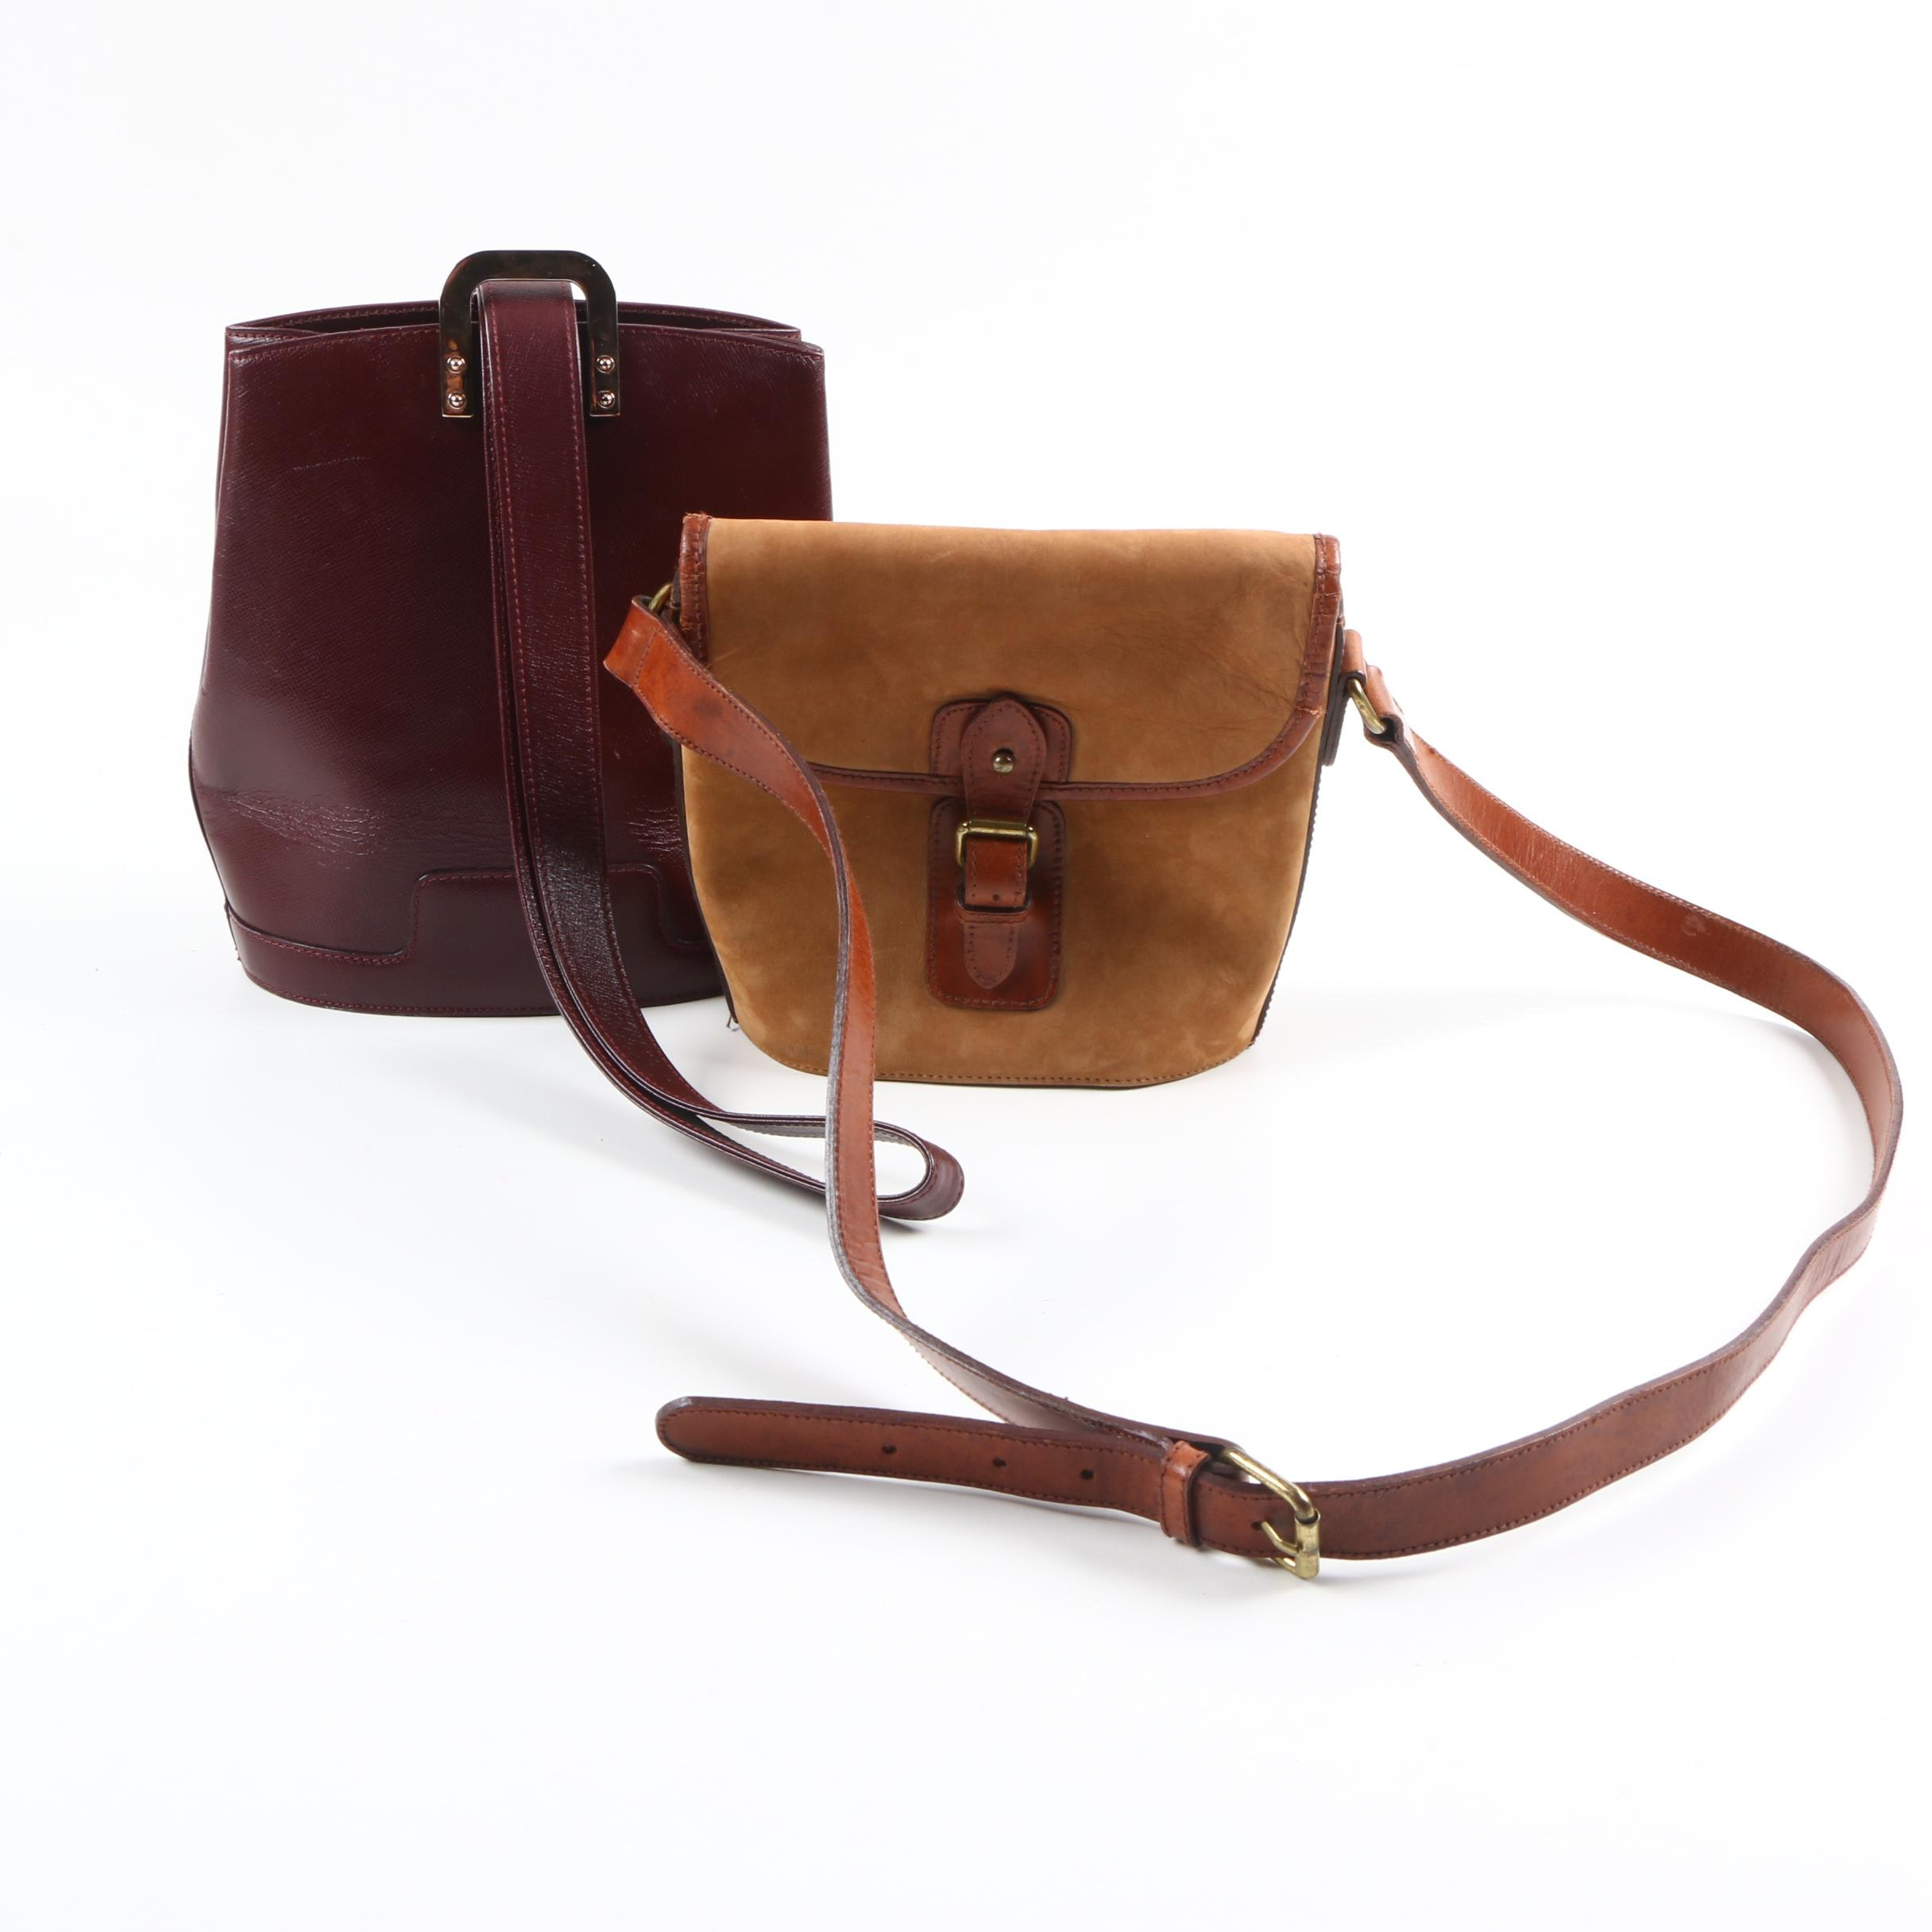 Valextra and Ralph Lauren Leather Shoulder Bags